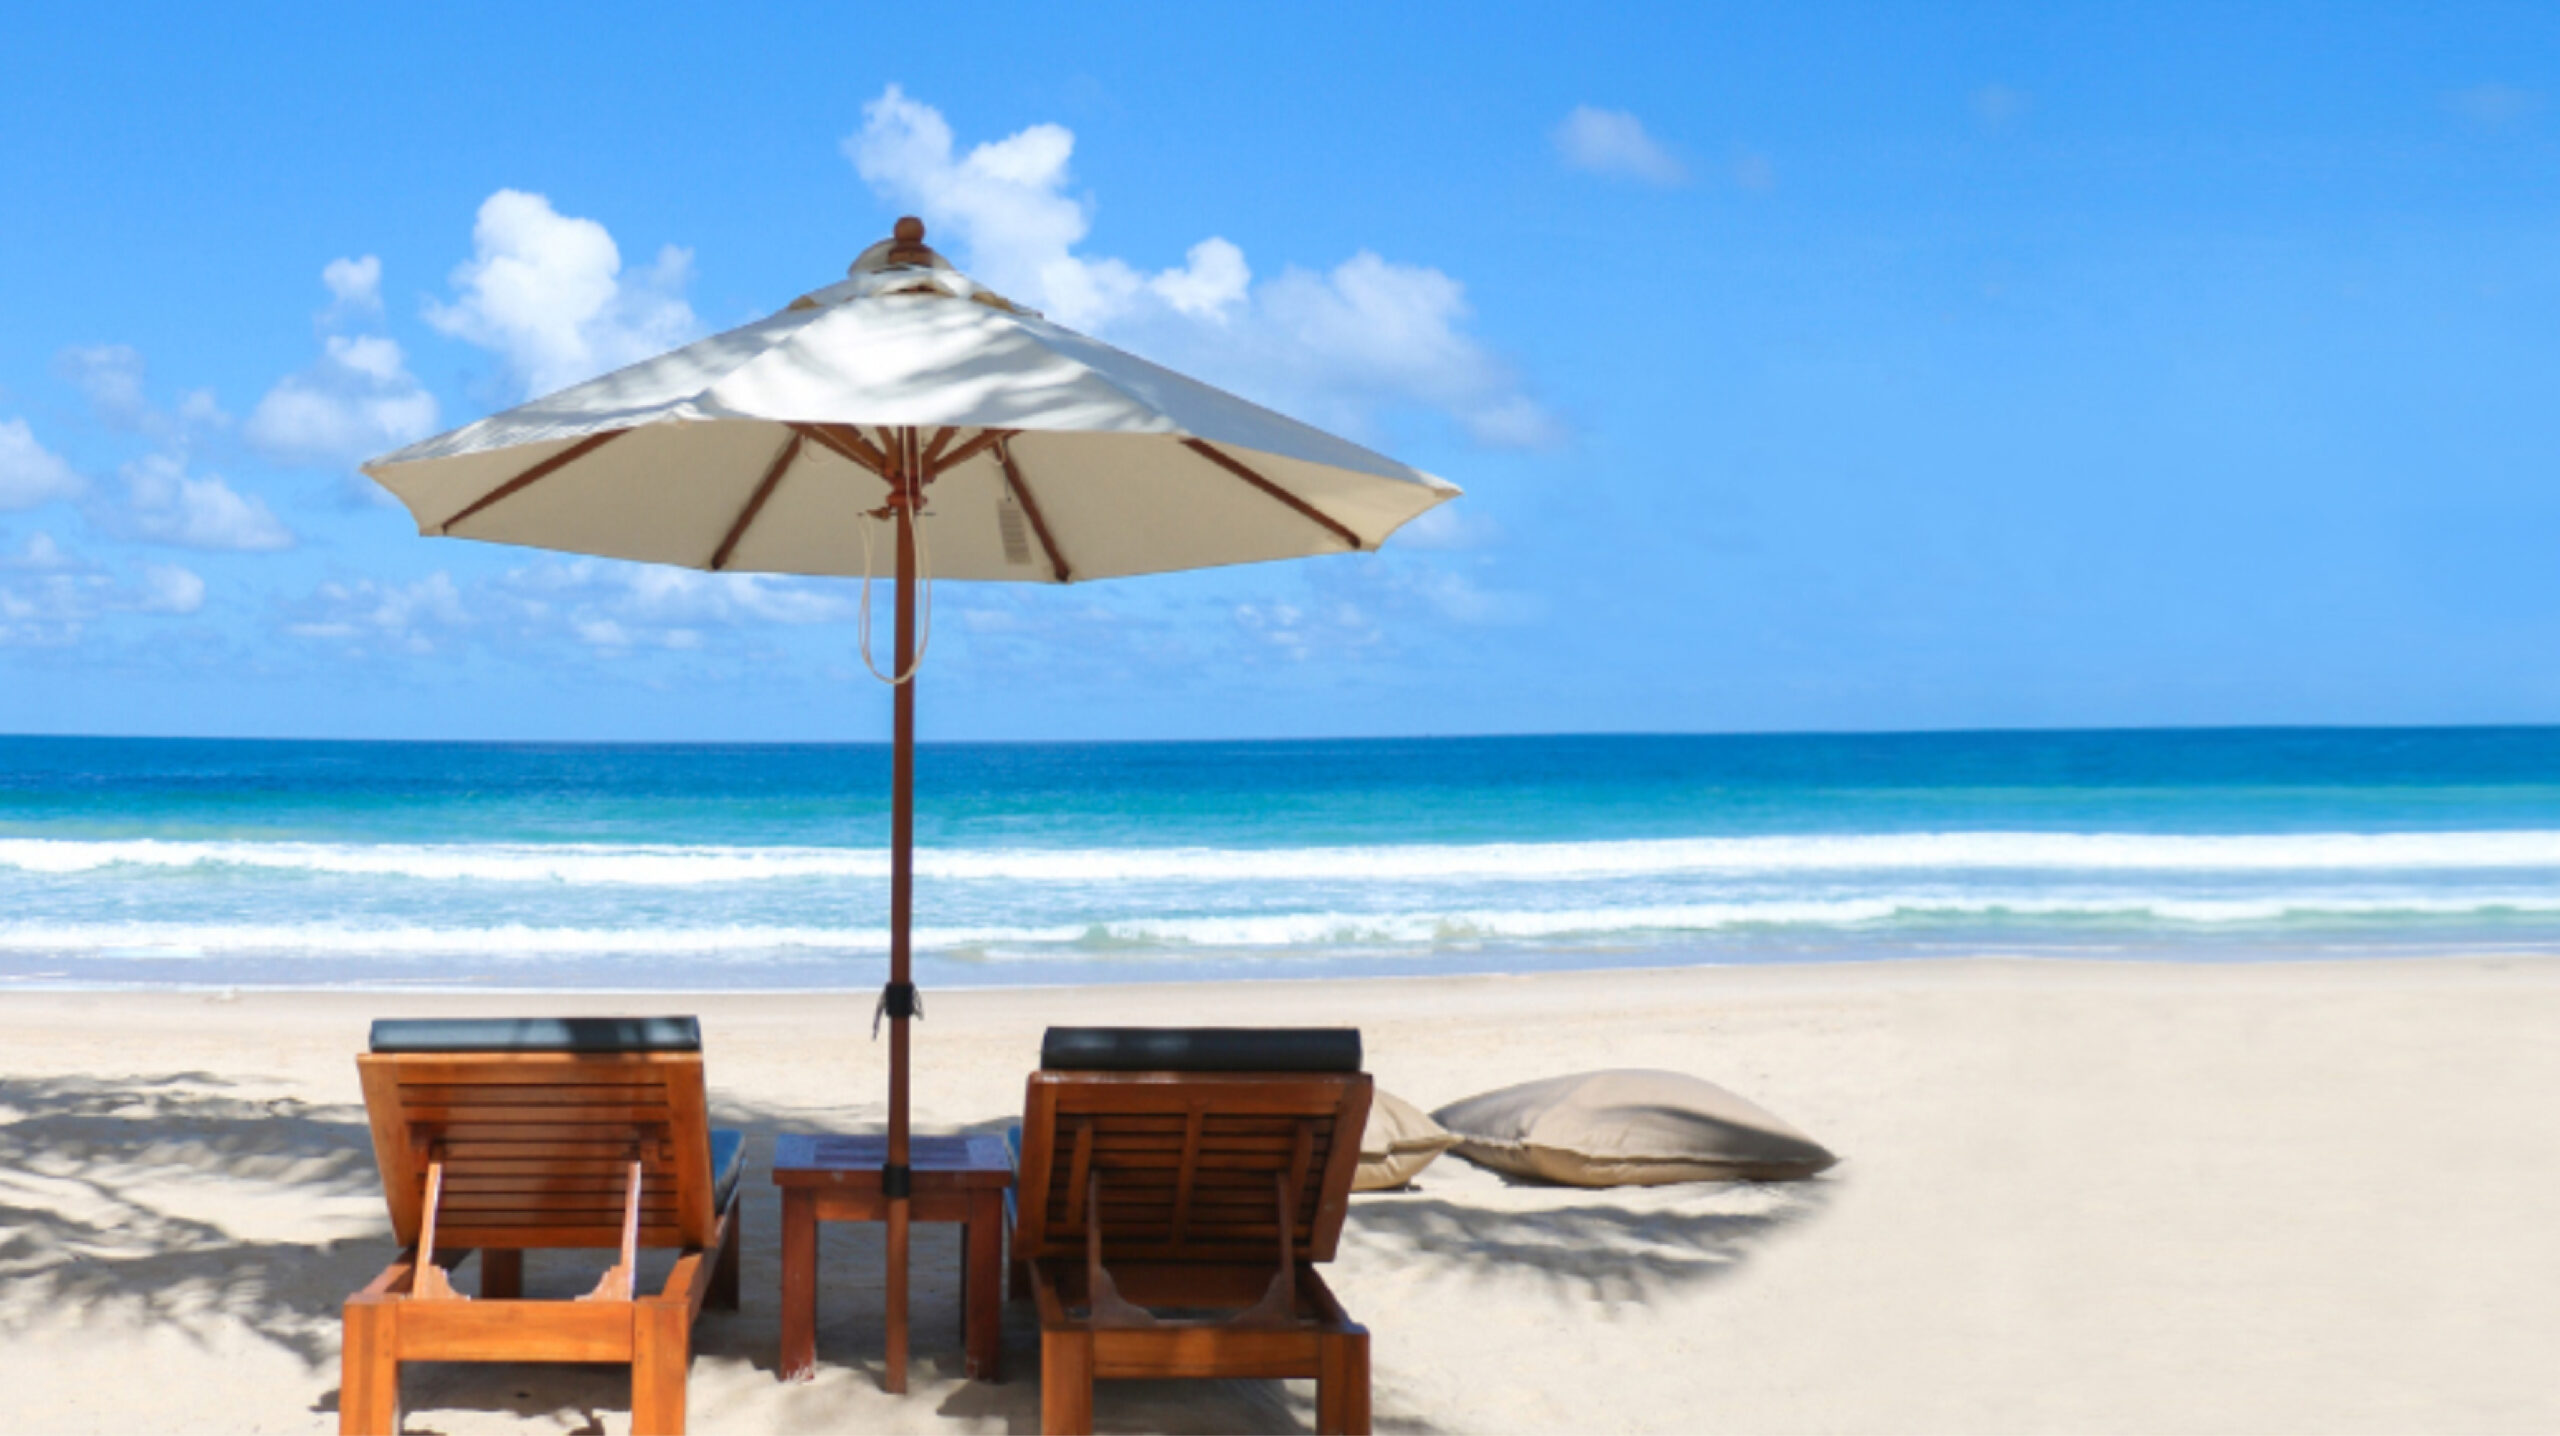 Exclusive deals, Sandbox offer - Pay 7, Stay 14